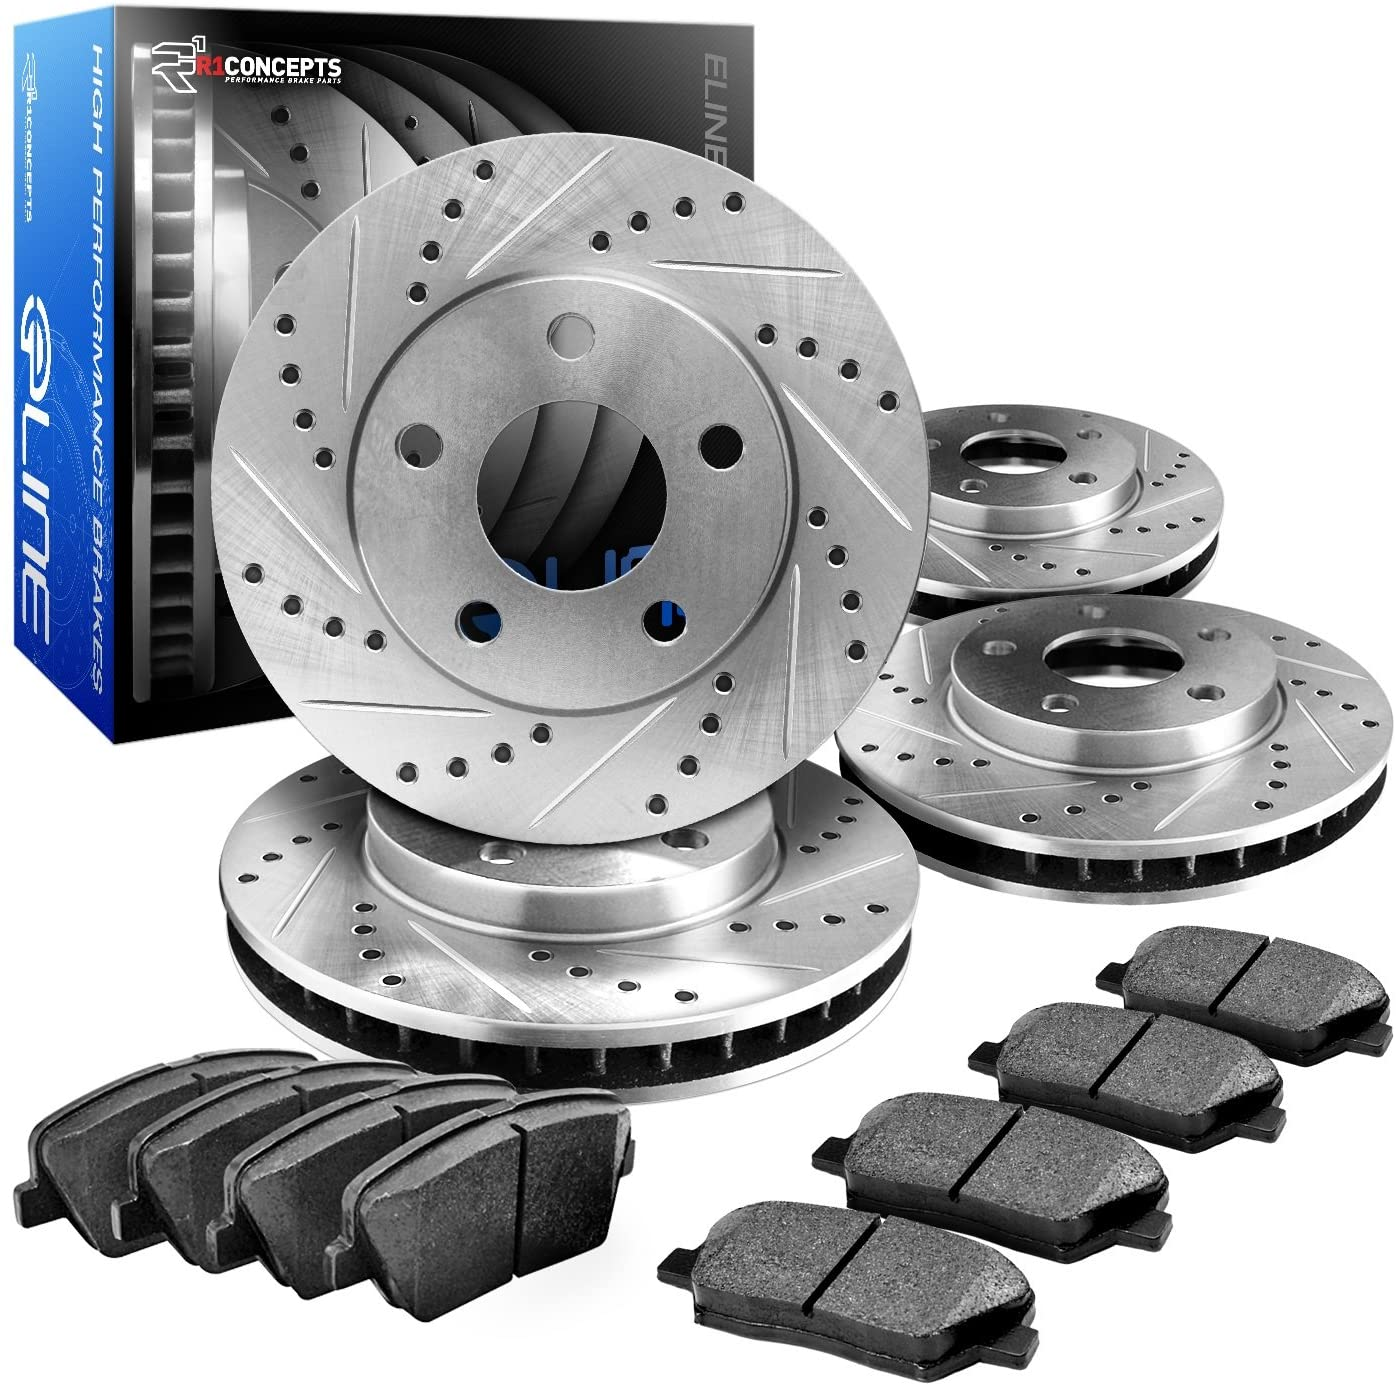 R1Concepts CEDS11124 Eline Series Cross-Drilled Slotted Rotors And Ceramic Pads